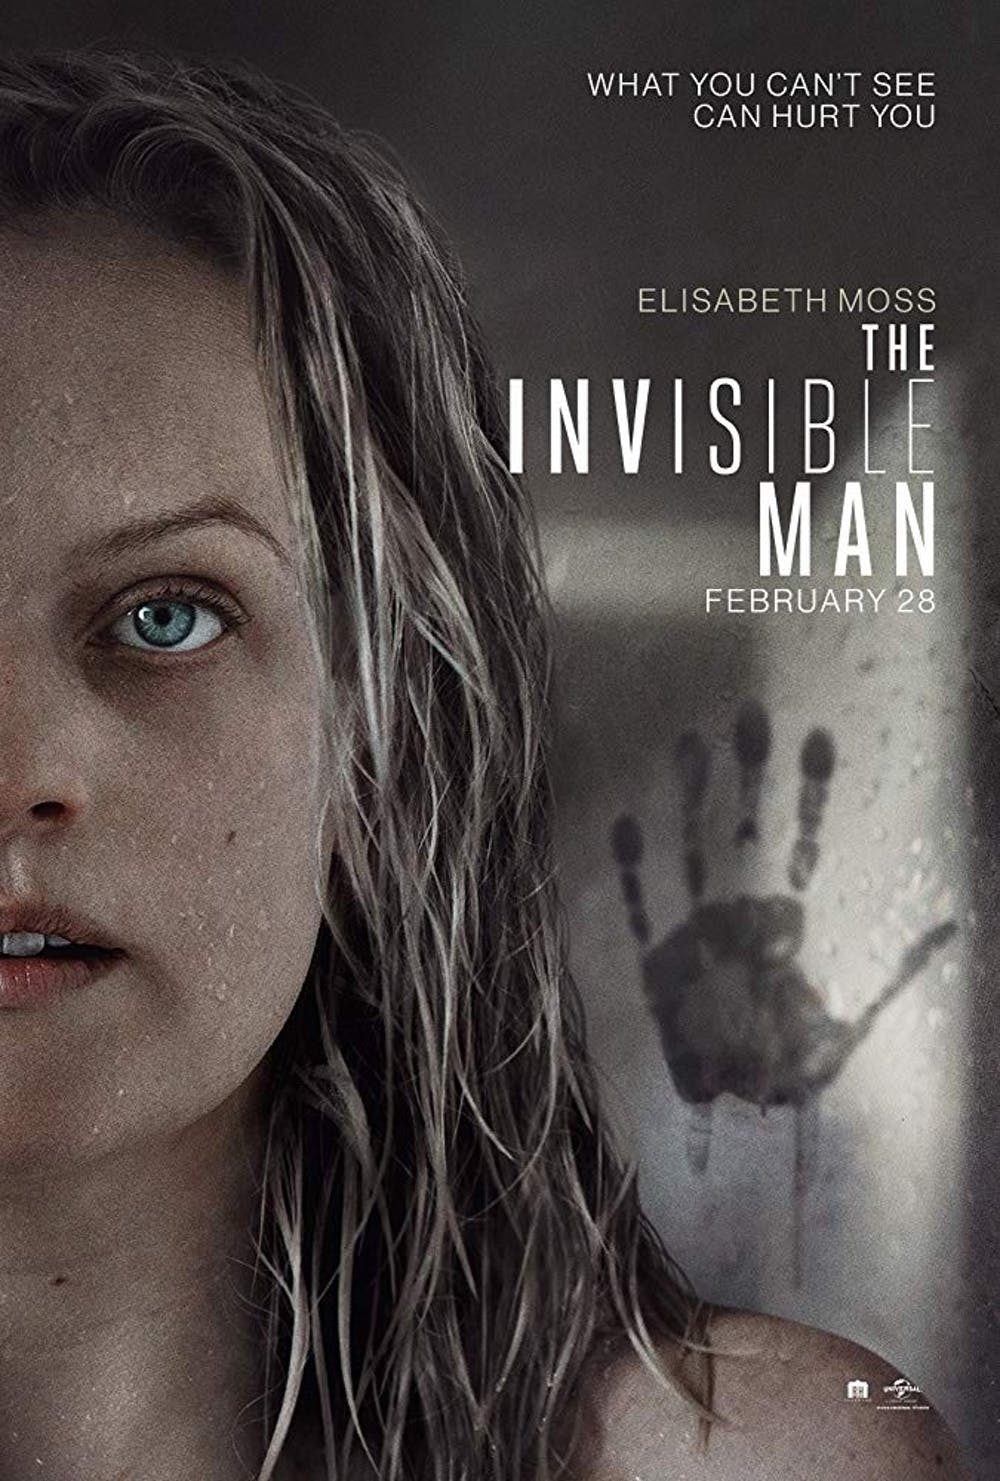 """Review: Blumhouse is back with another eccentric horror film """"The Invisible Man"""""""